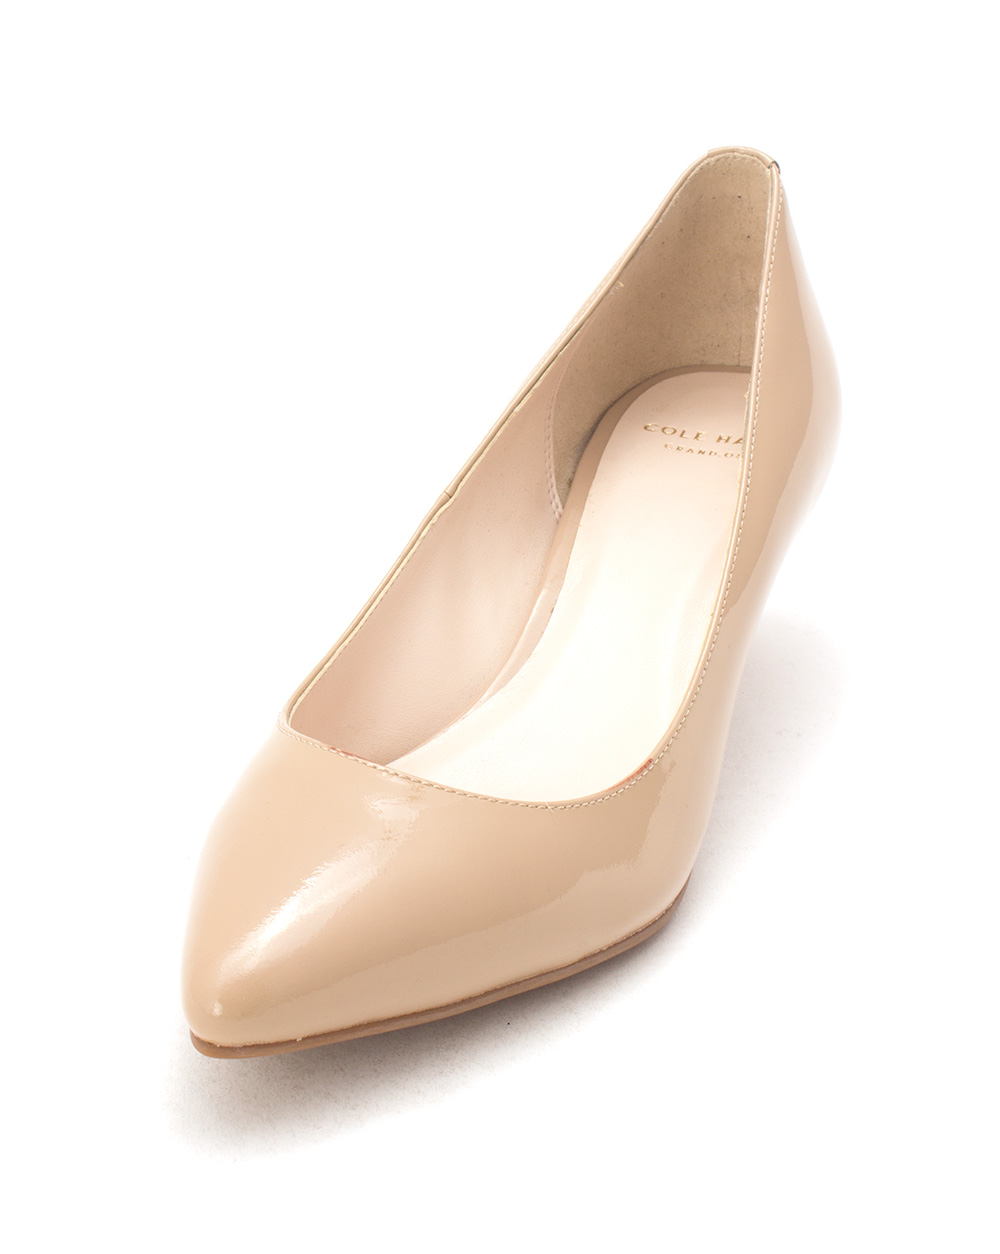 Cole Haan Womens Chantelsam Pointed Toe Classic Pumps, Maple Sugar, Size 6.0